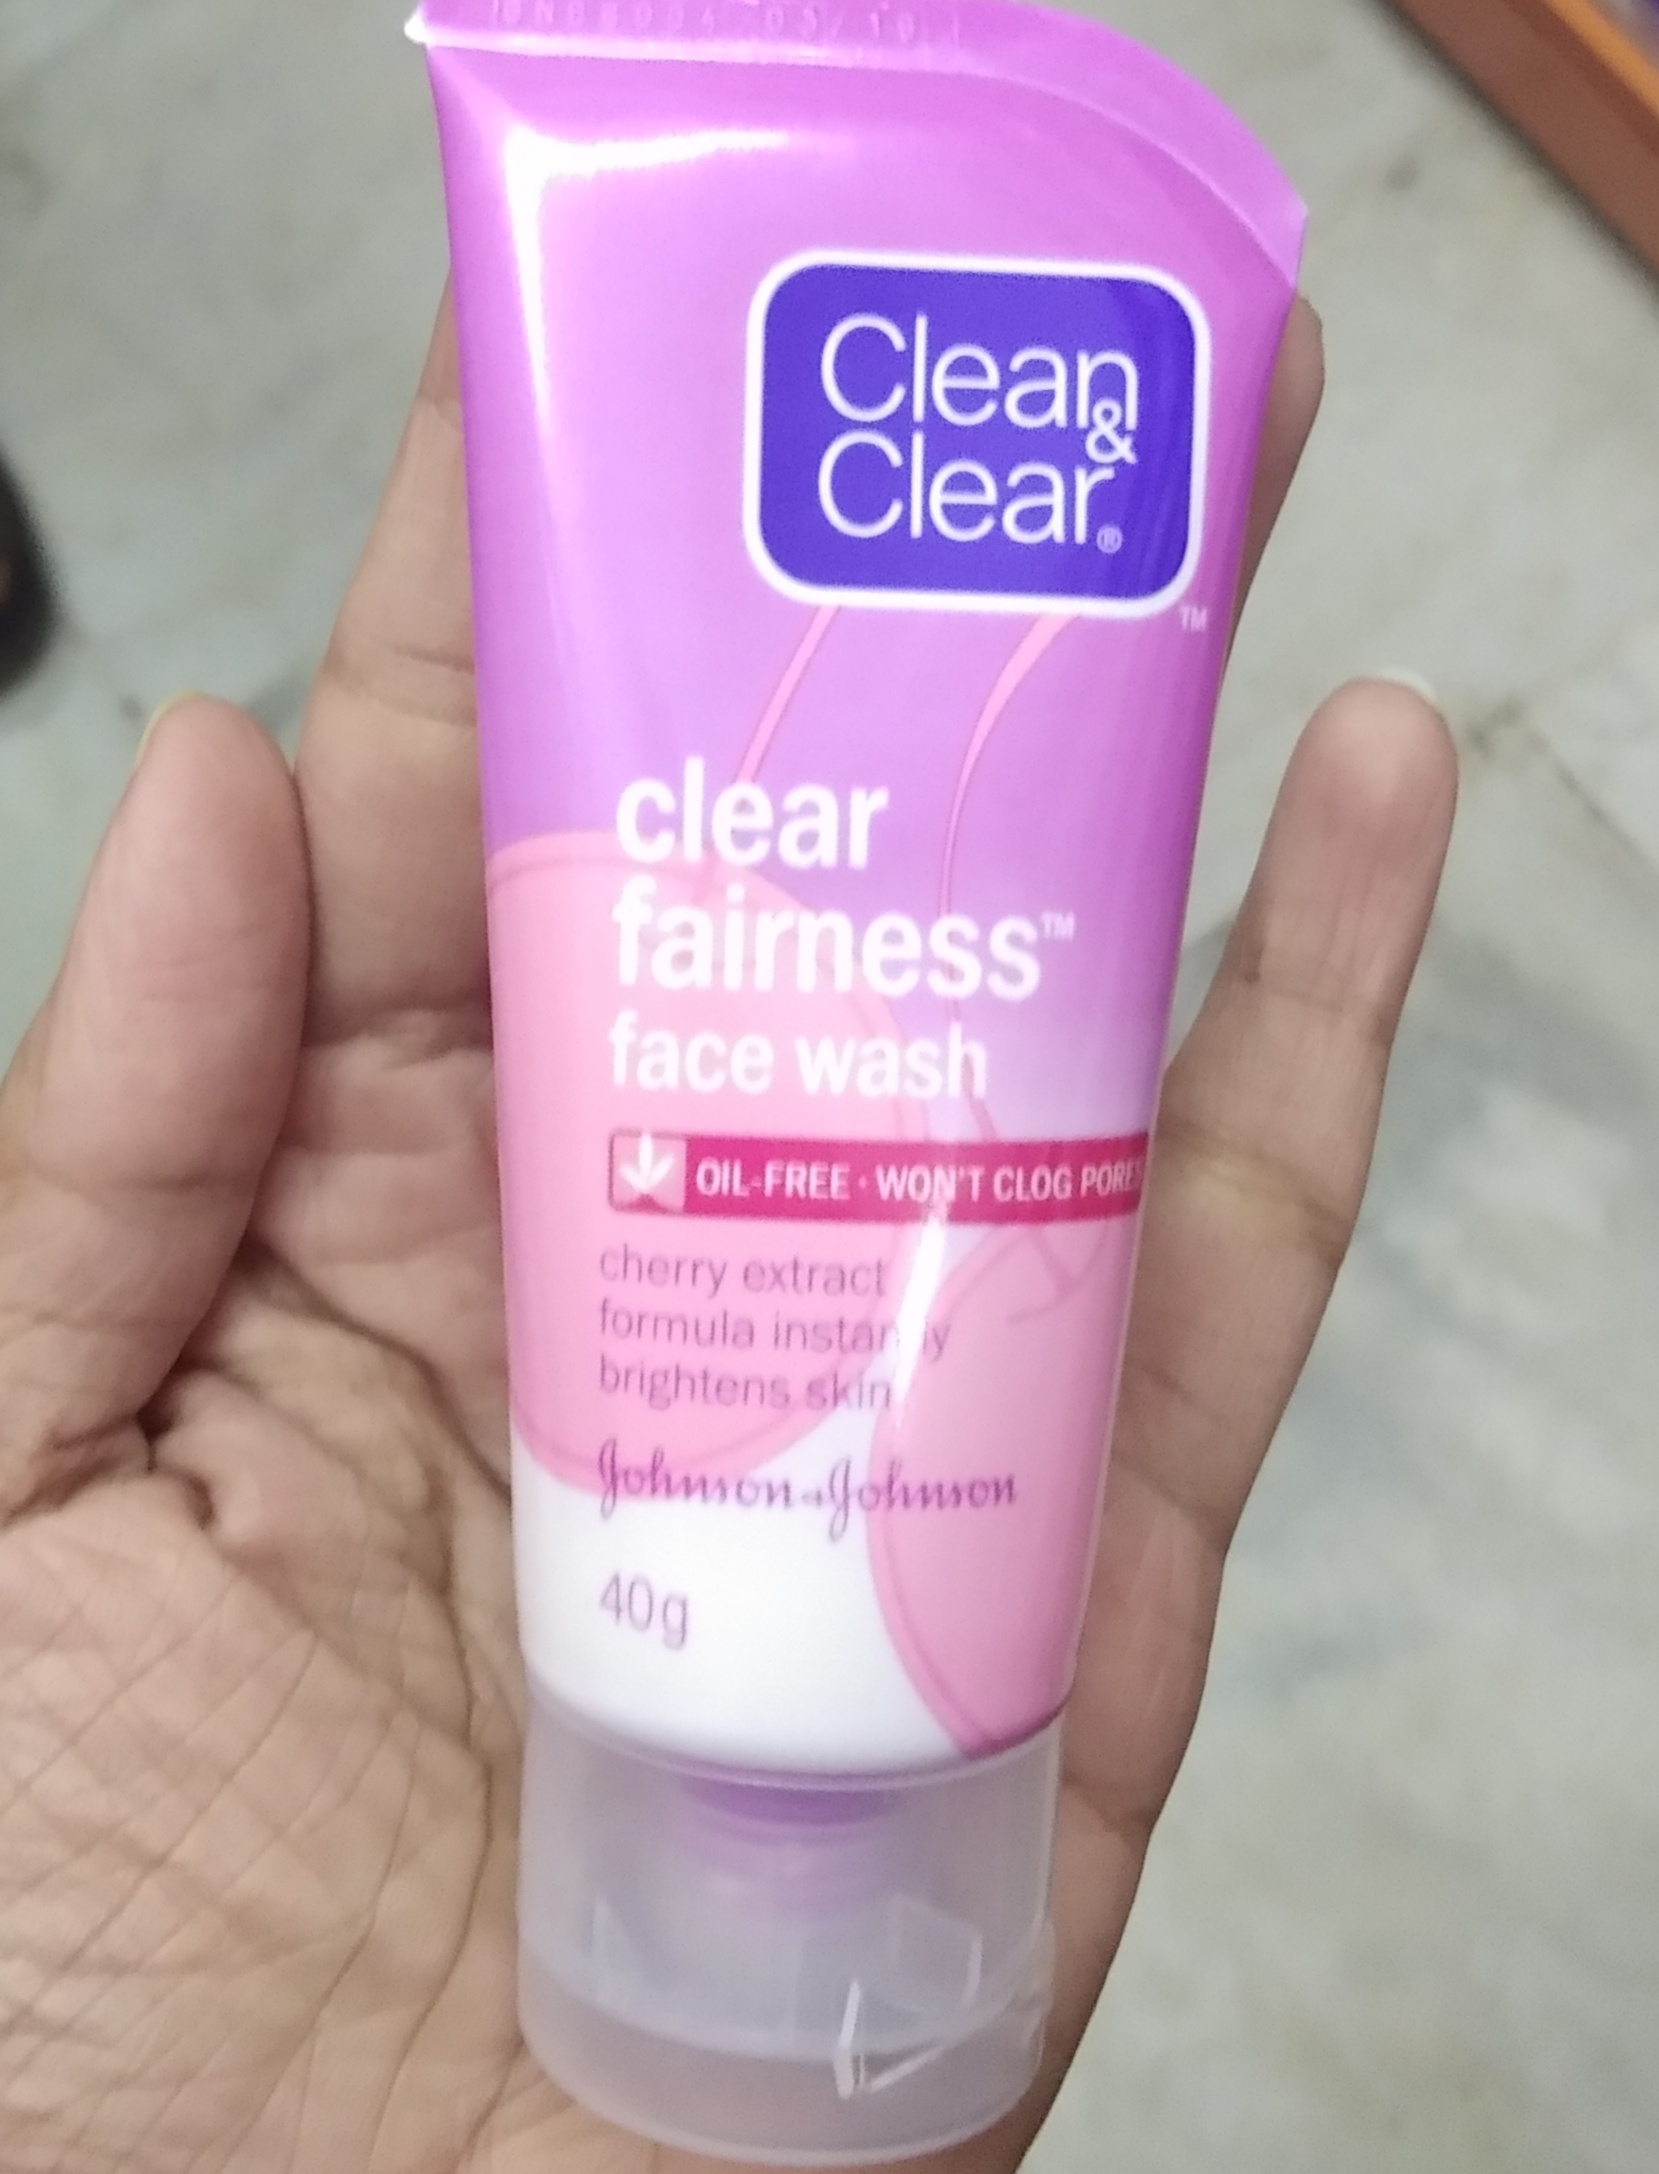 Clean And Clear Fairness Face Wash-Just a face wash and nothing special-By Nasreen-1